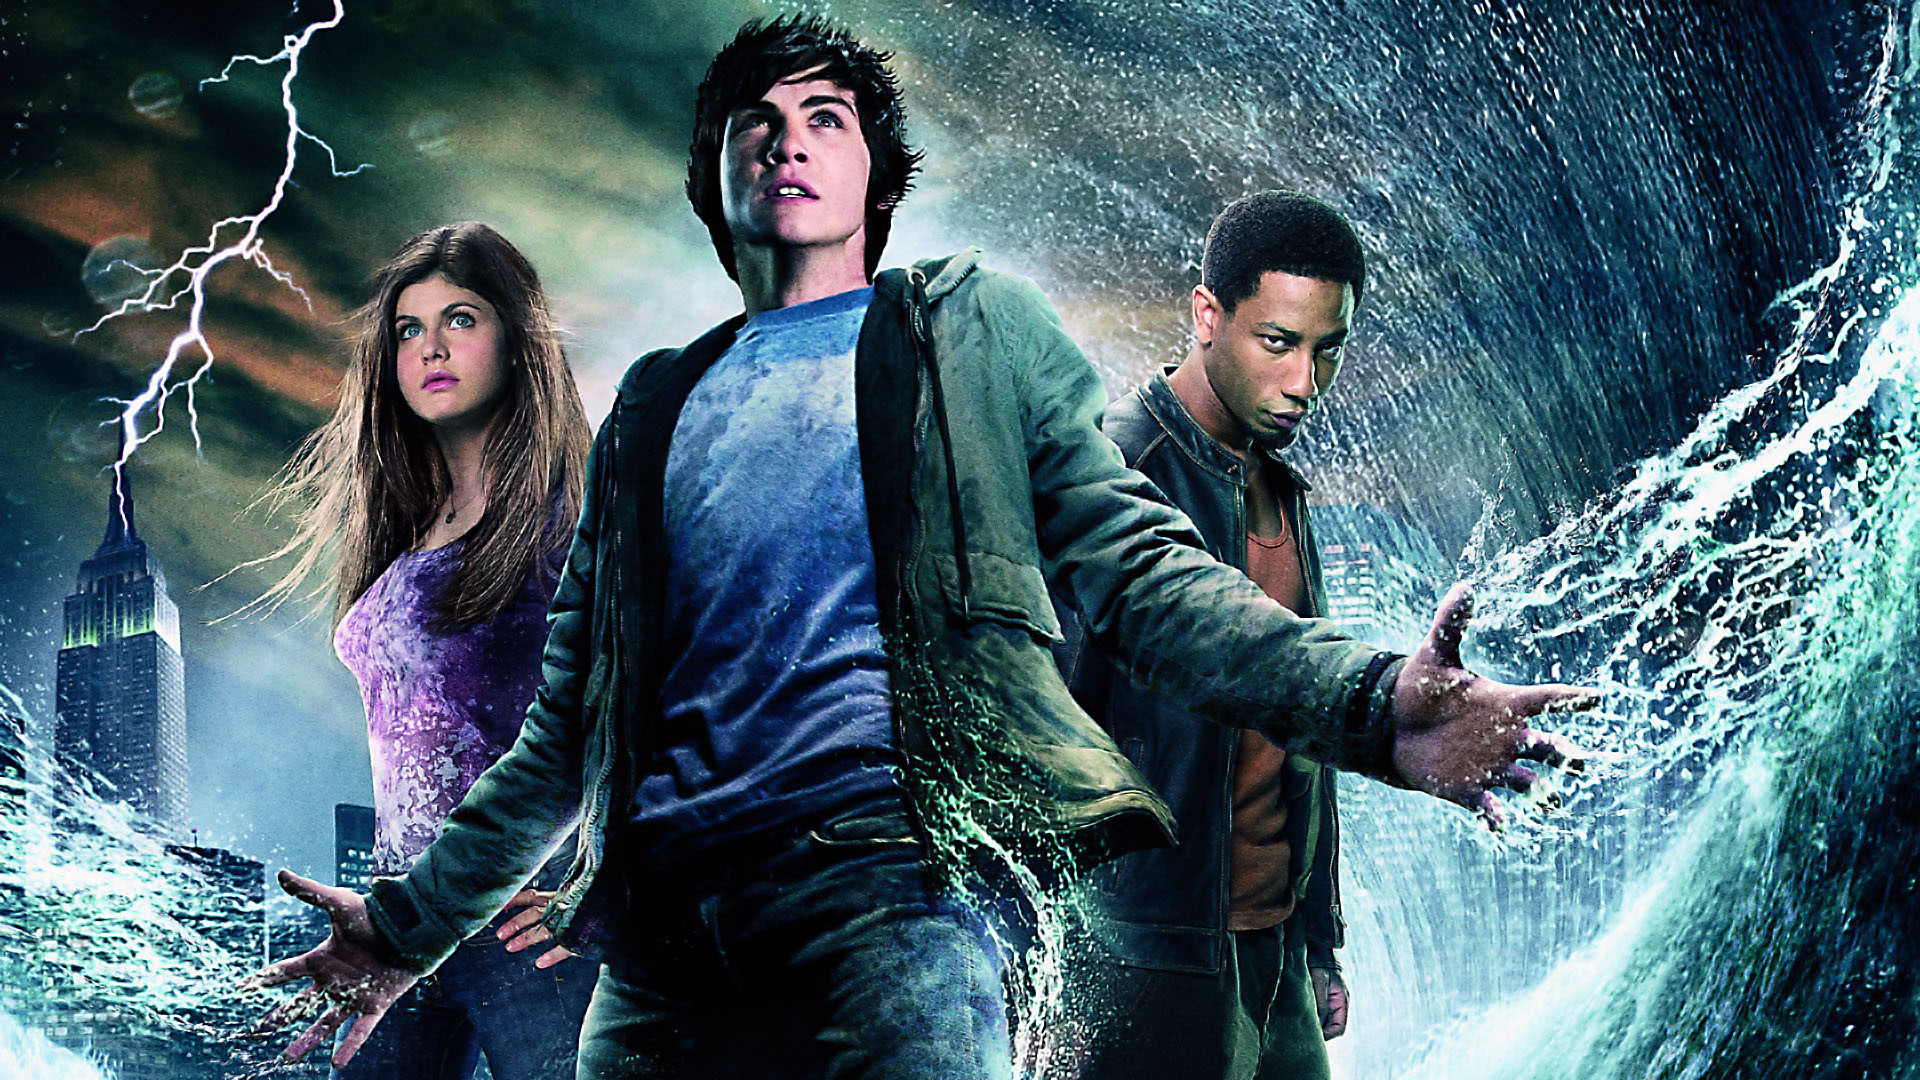 Camp half blood images percy jackson hd wallpaper and background camp half blood images percy jackson hd wallpaper and background photos voltagebd Images